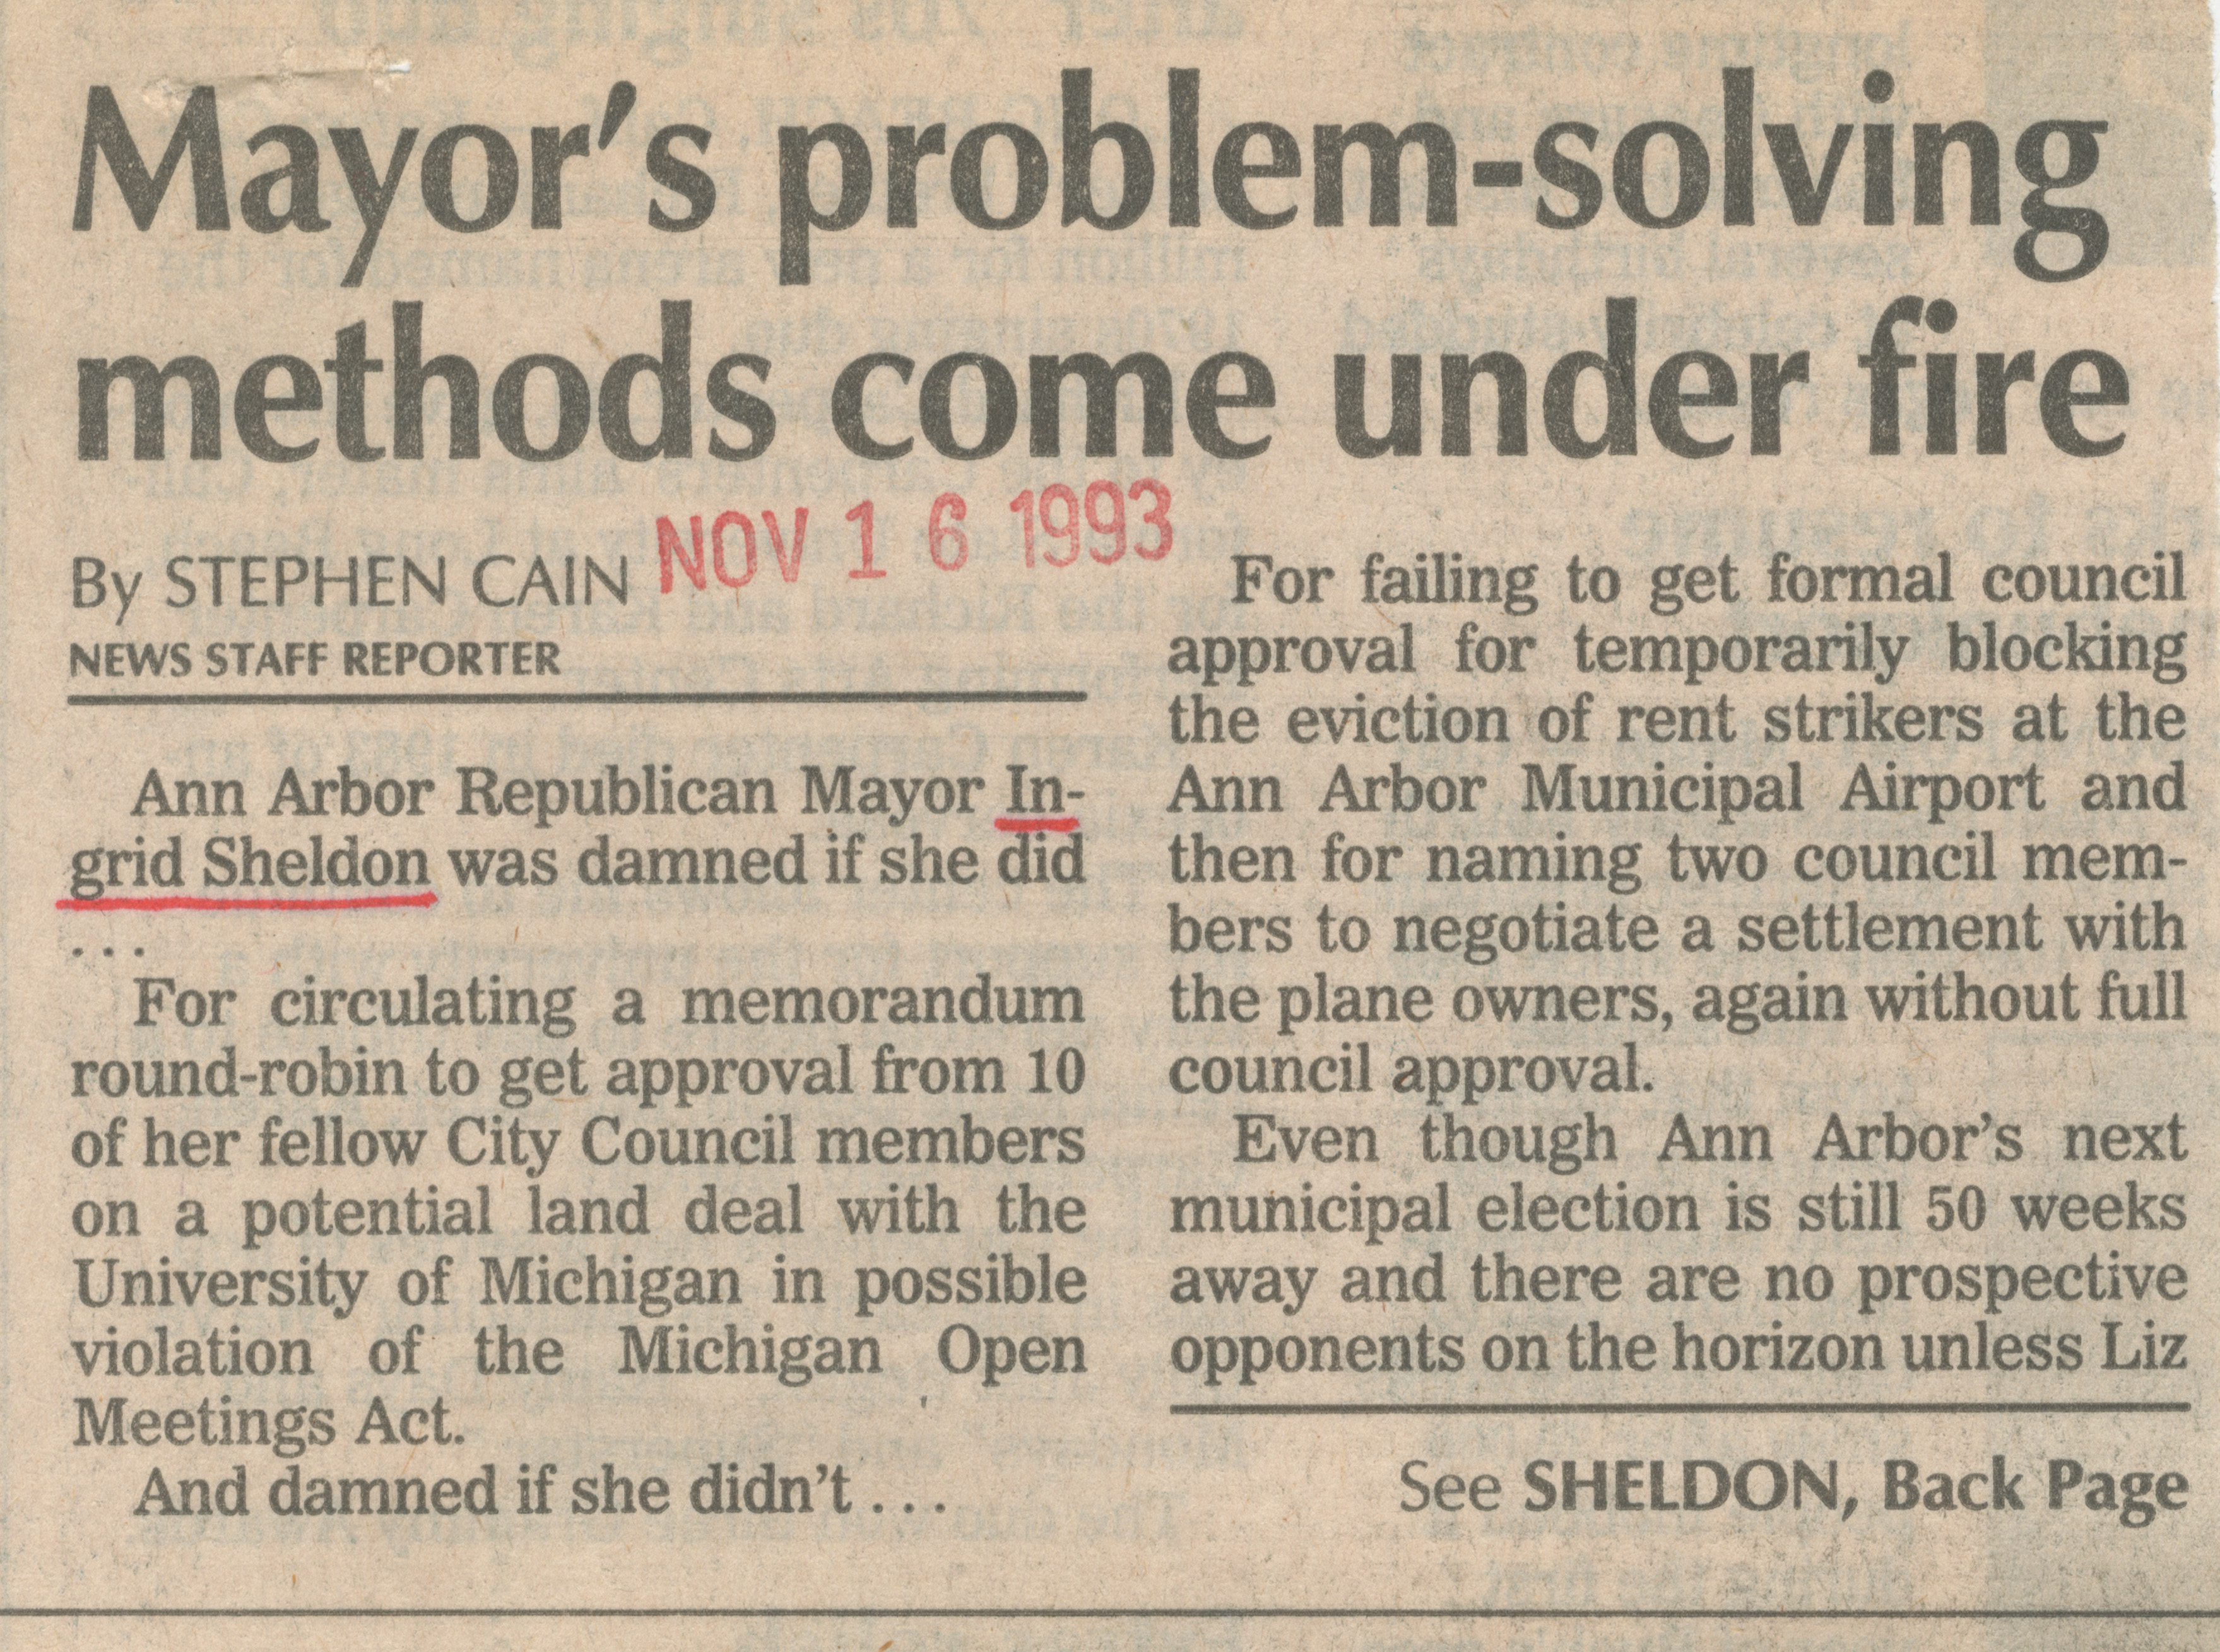 Mayor's problem-solving methods come under fire image